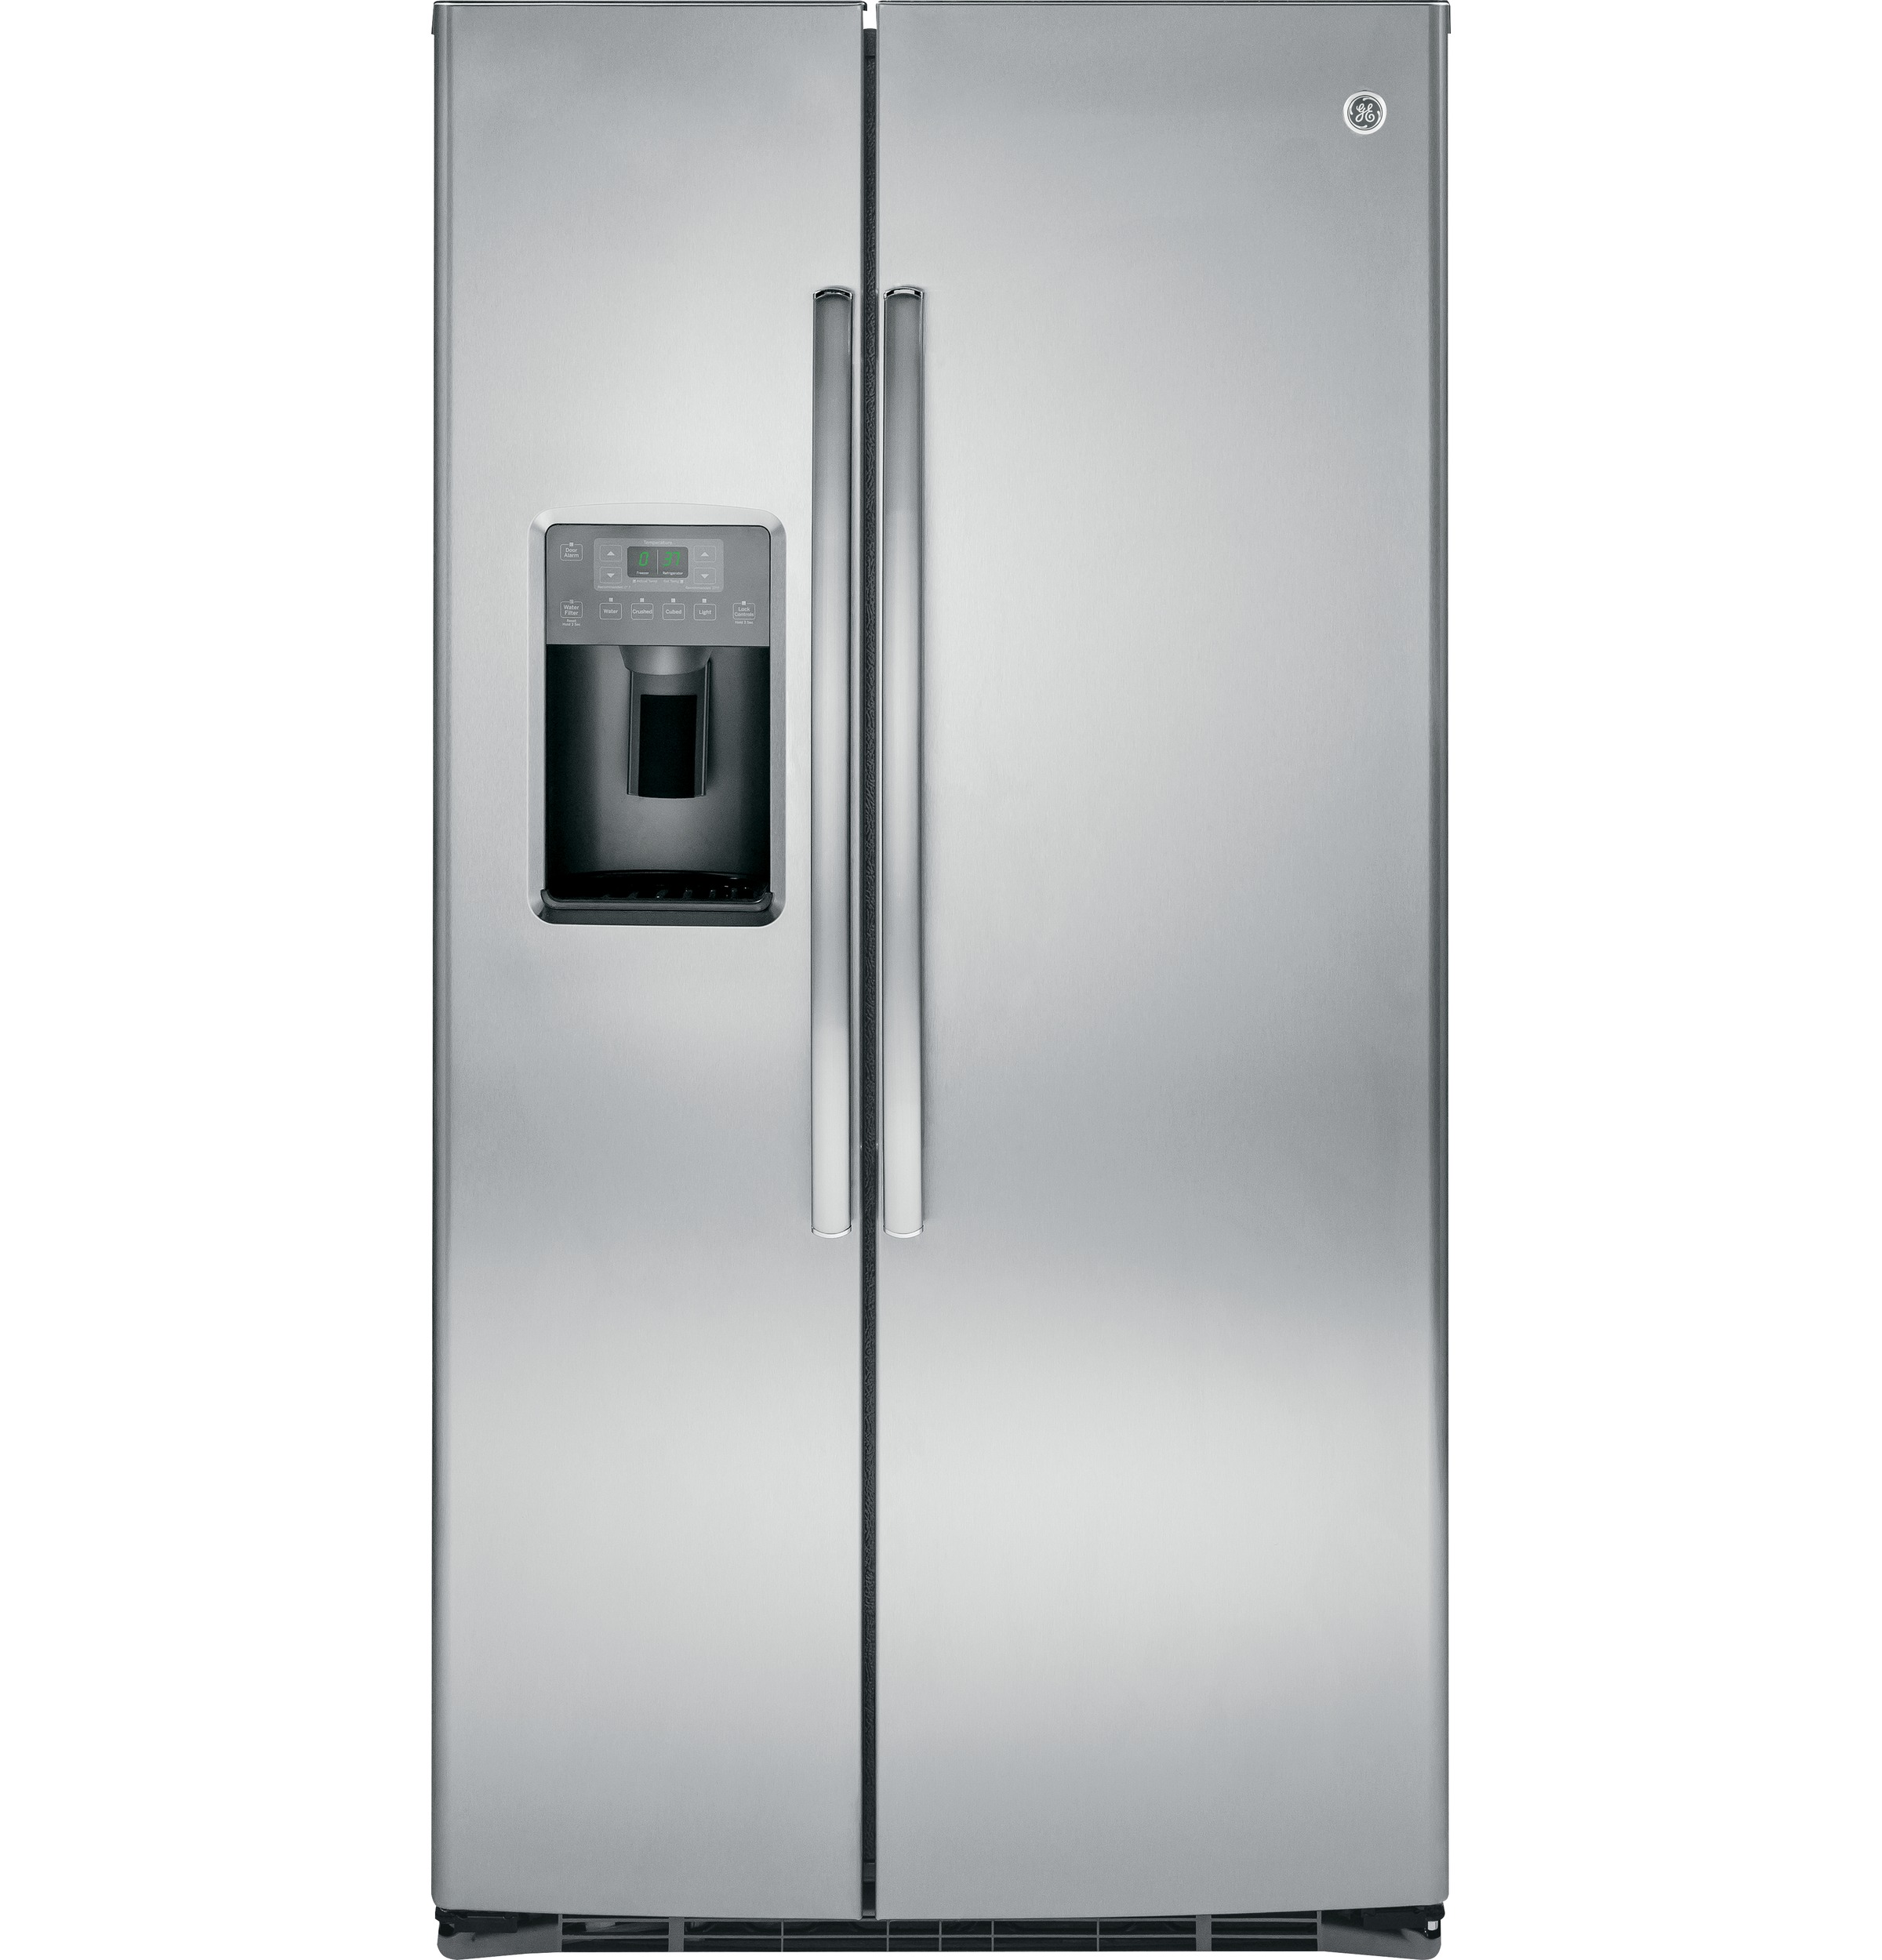 Model: GSE25HSHSS | GE® ENERGY STAR® 25.3 Cu. Ft. Side-By-Side Refrigerator